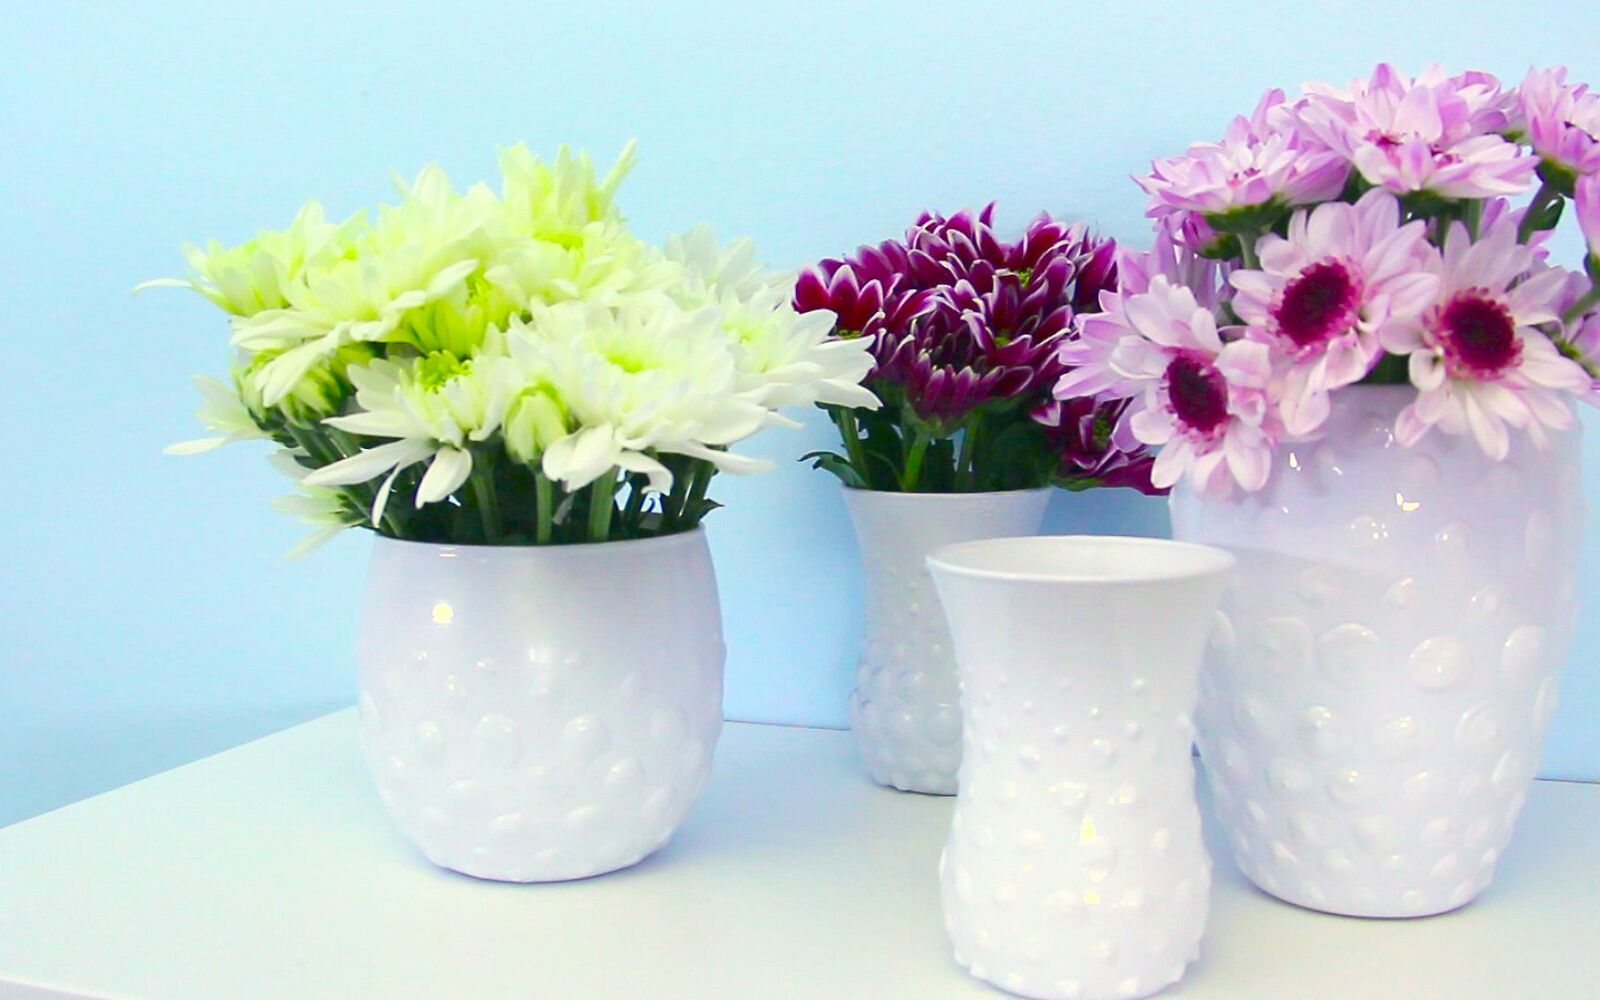 s 15 incredible vases you can make for your bestie on a budget, Make A Hobnail Heirloom With 1 Glass